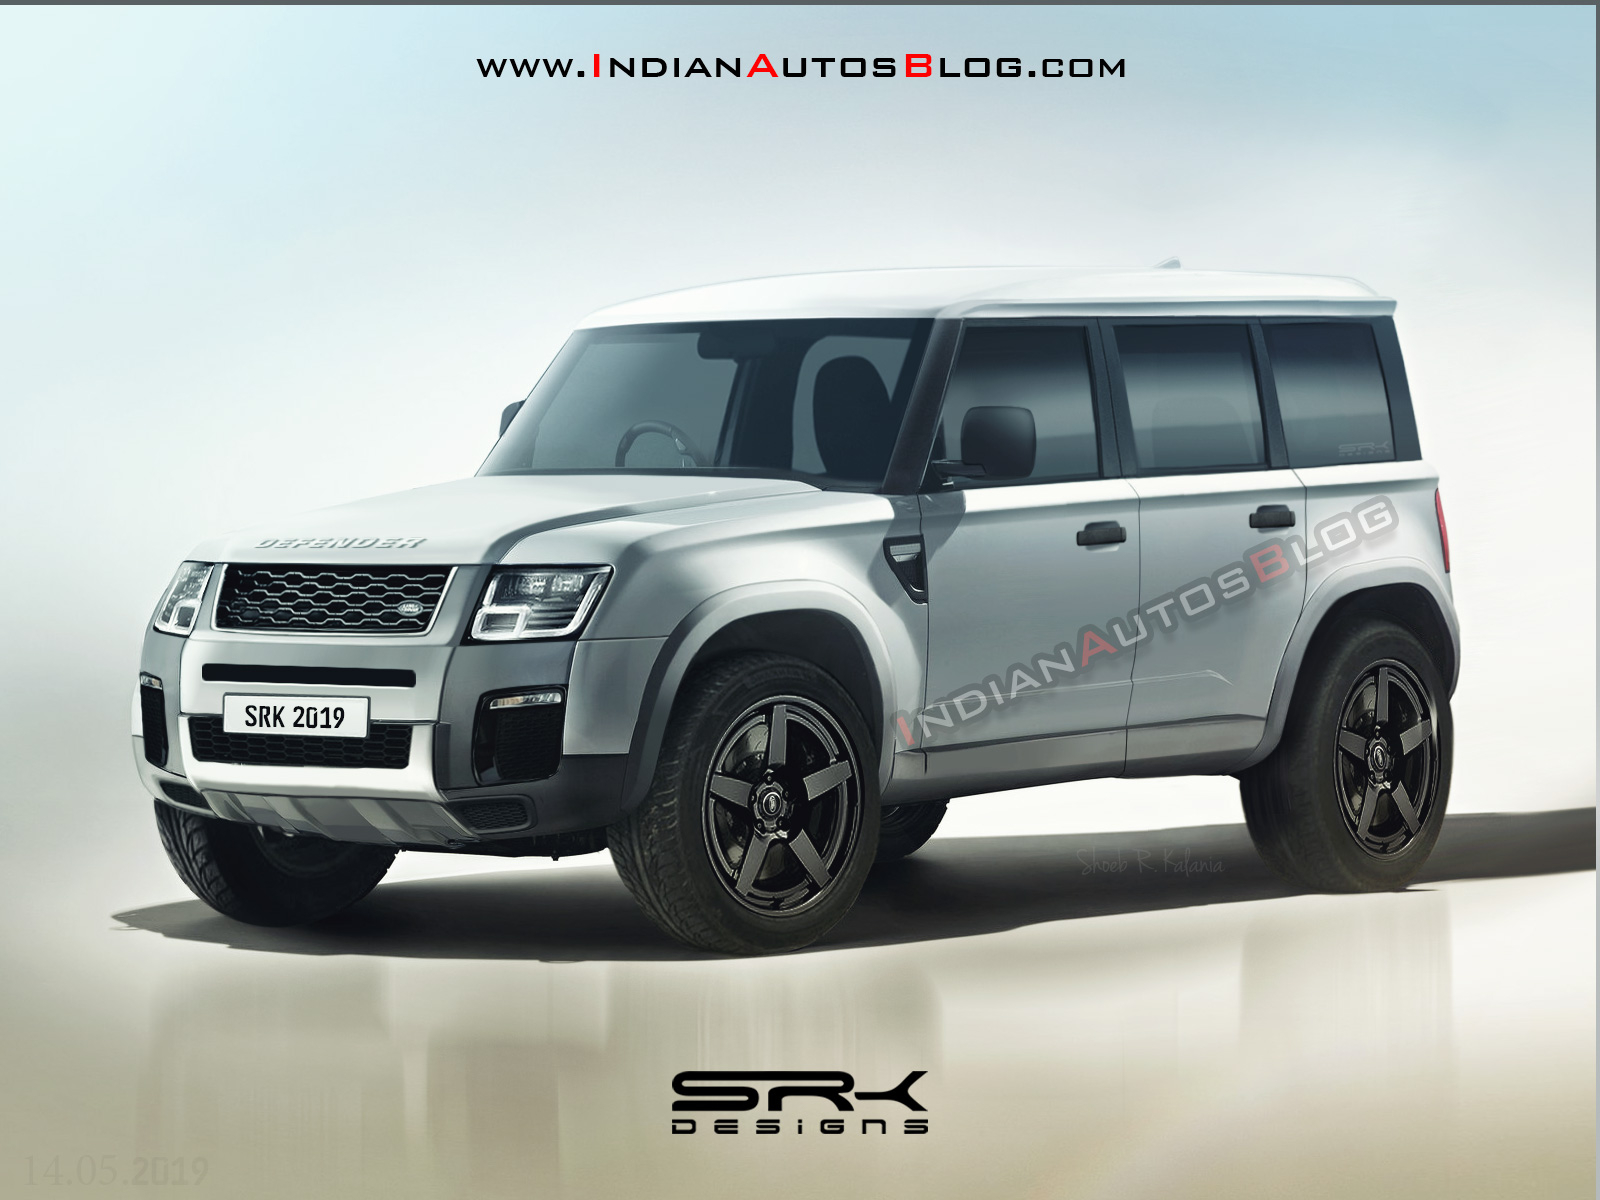 2021 Land Rover Defender Price In India, Spy Shots, Review ...